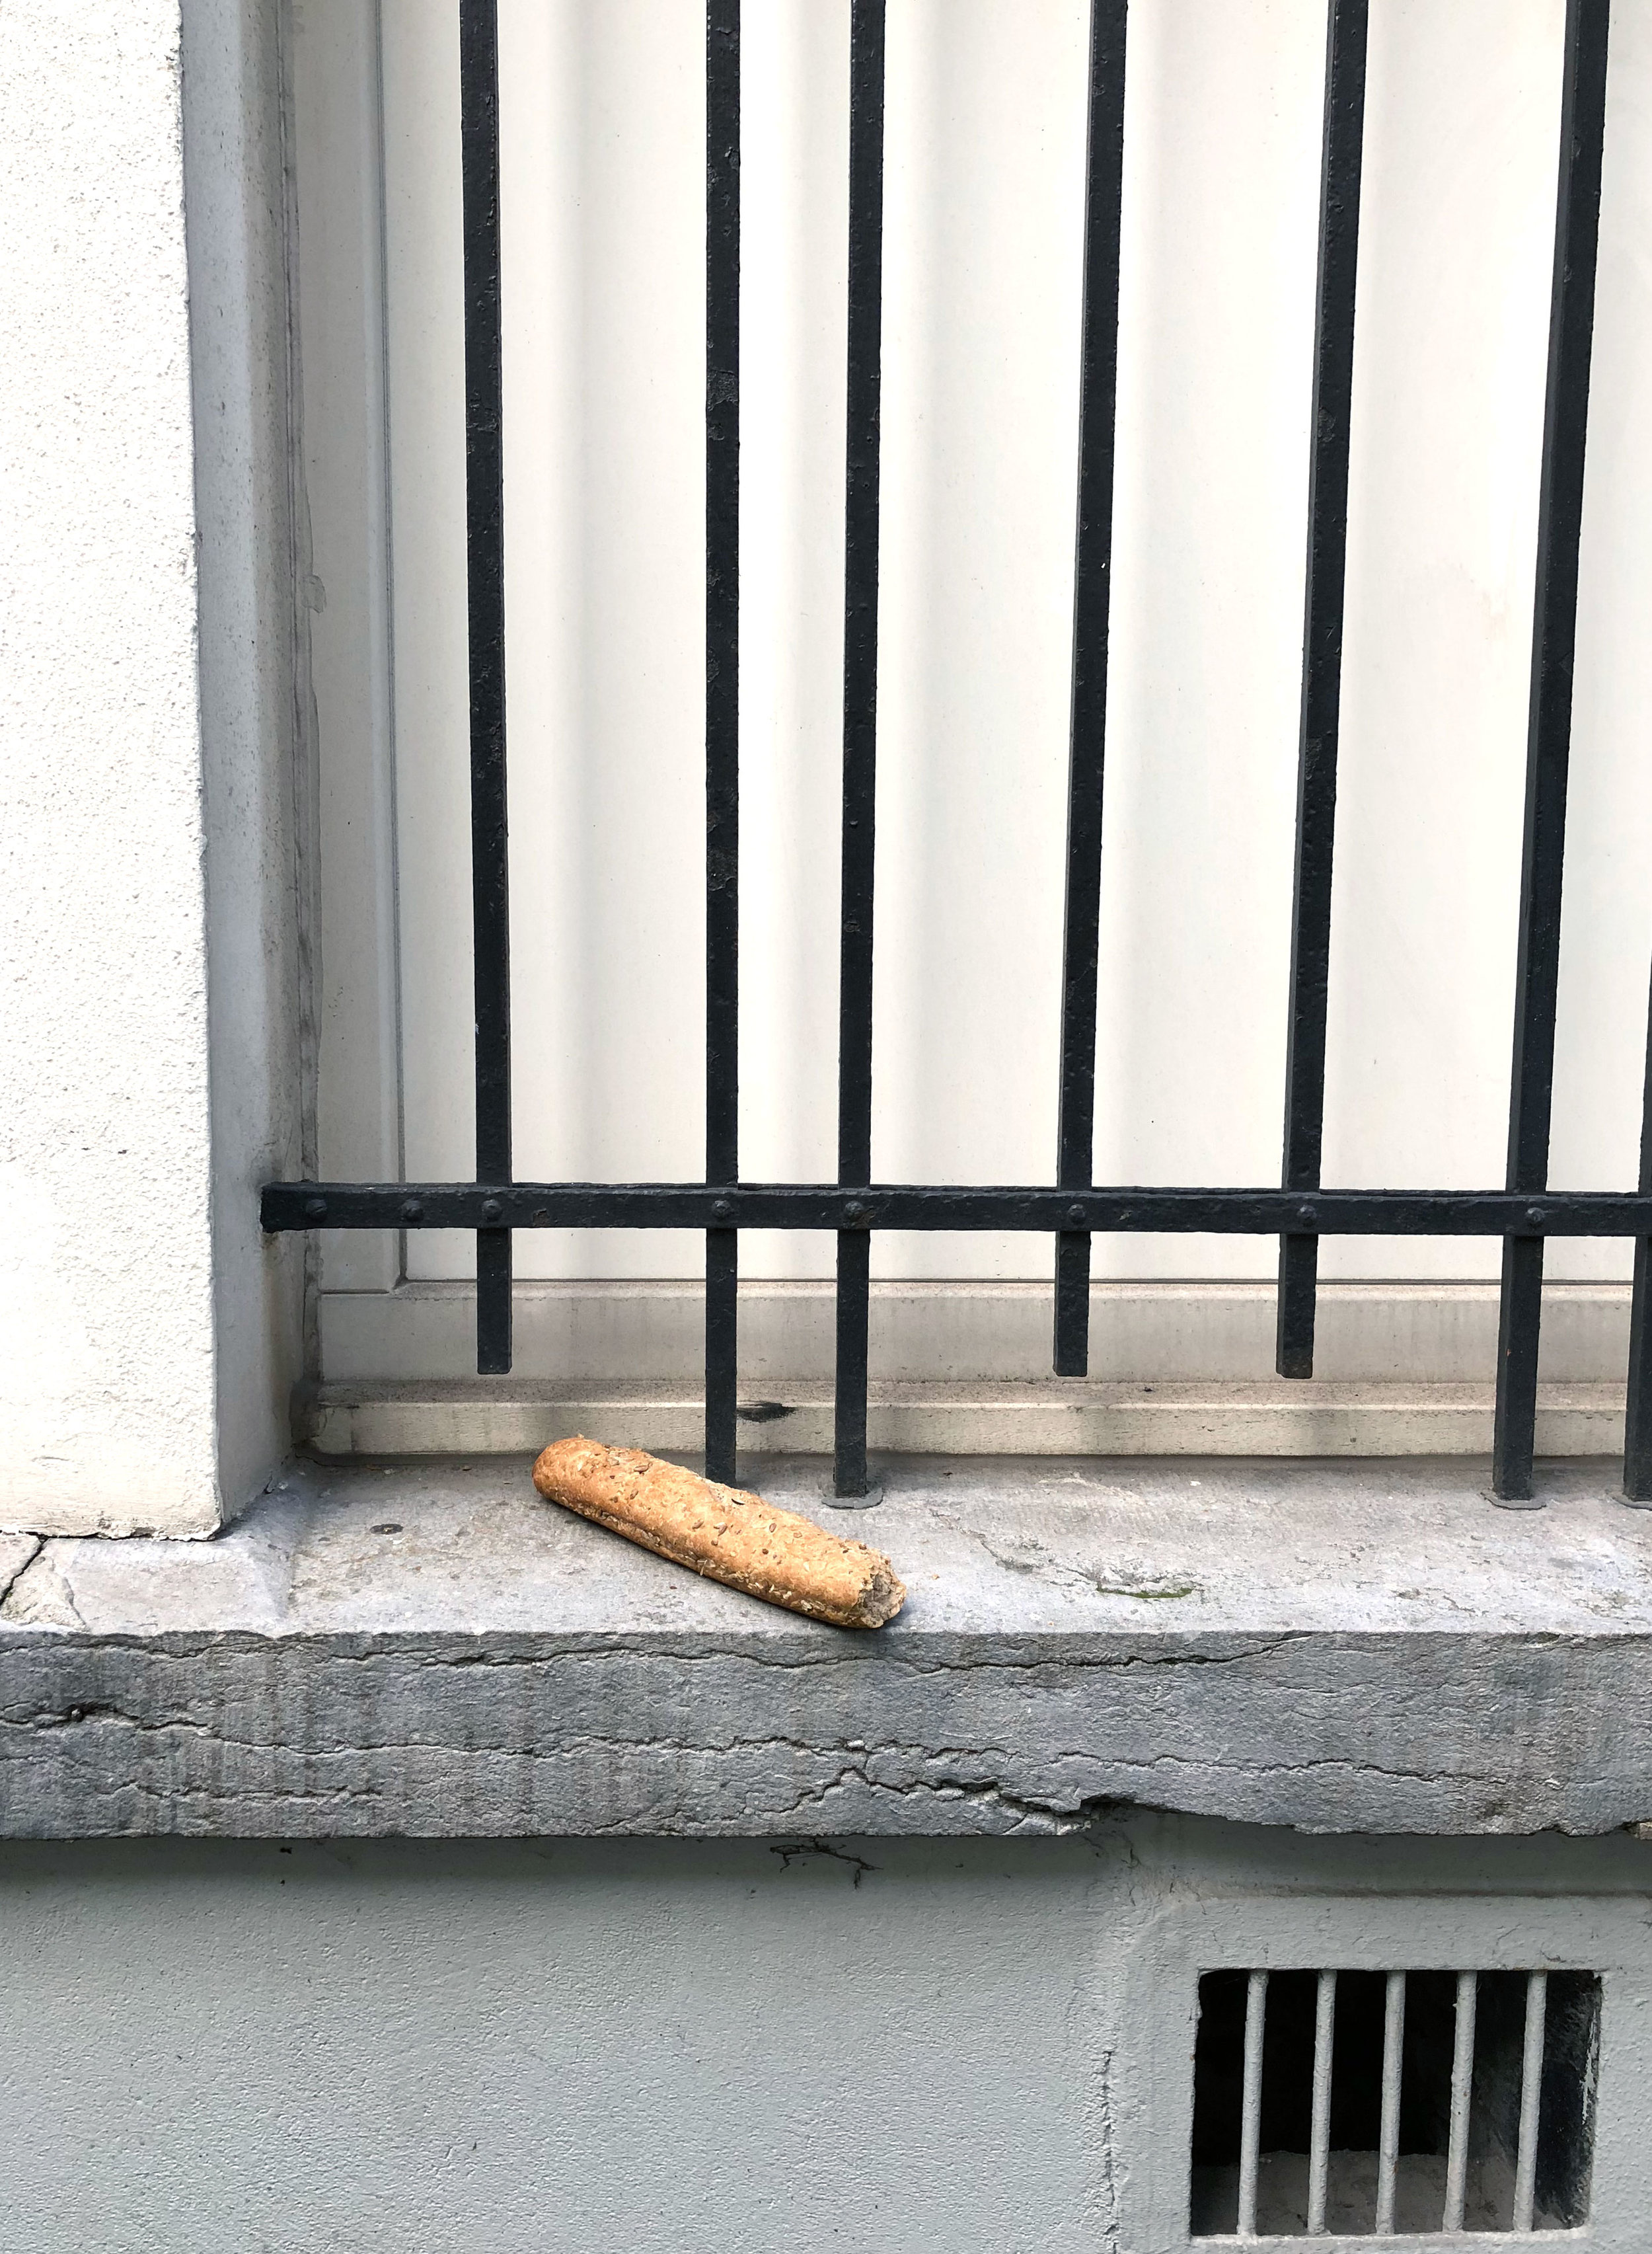 Missing baguette found.